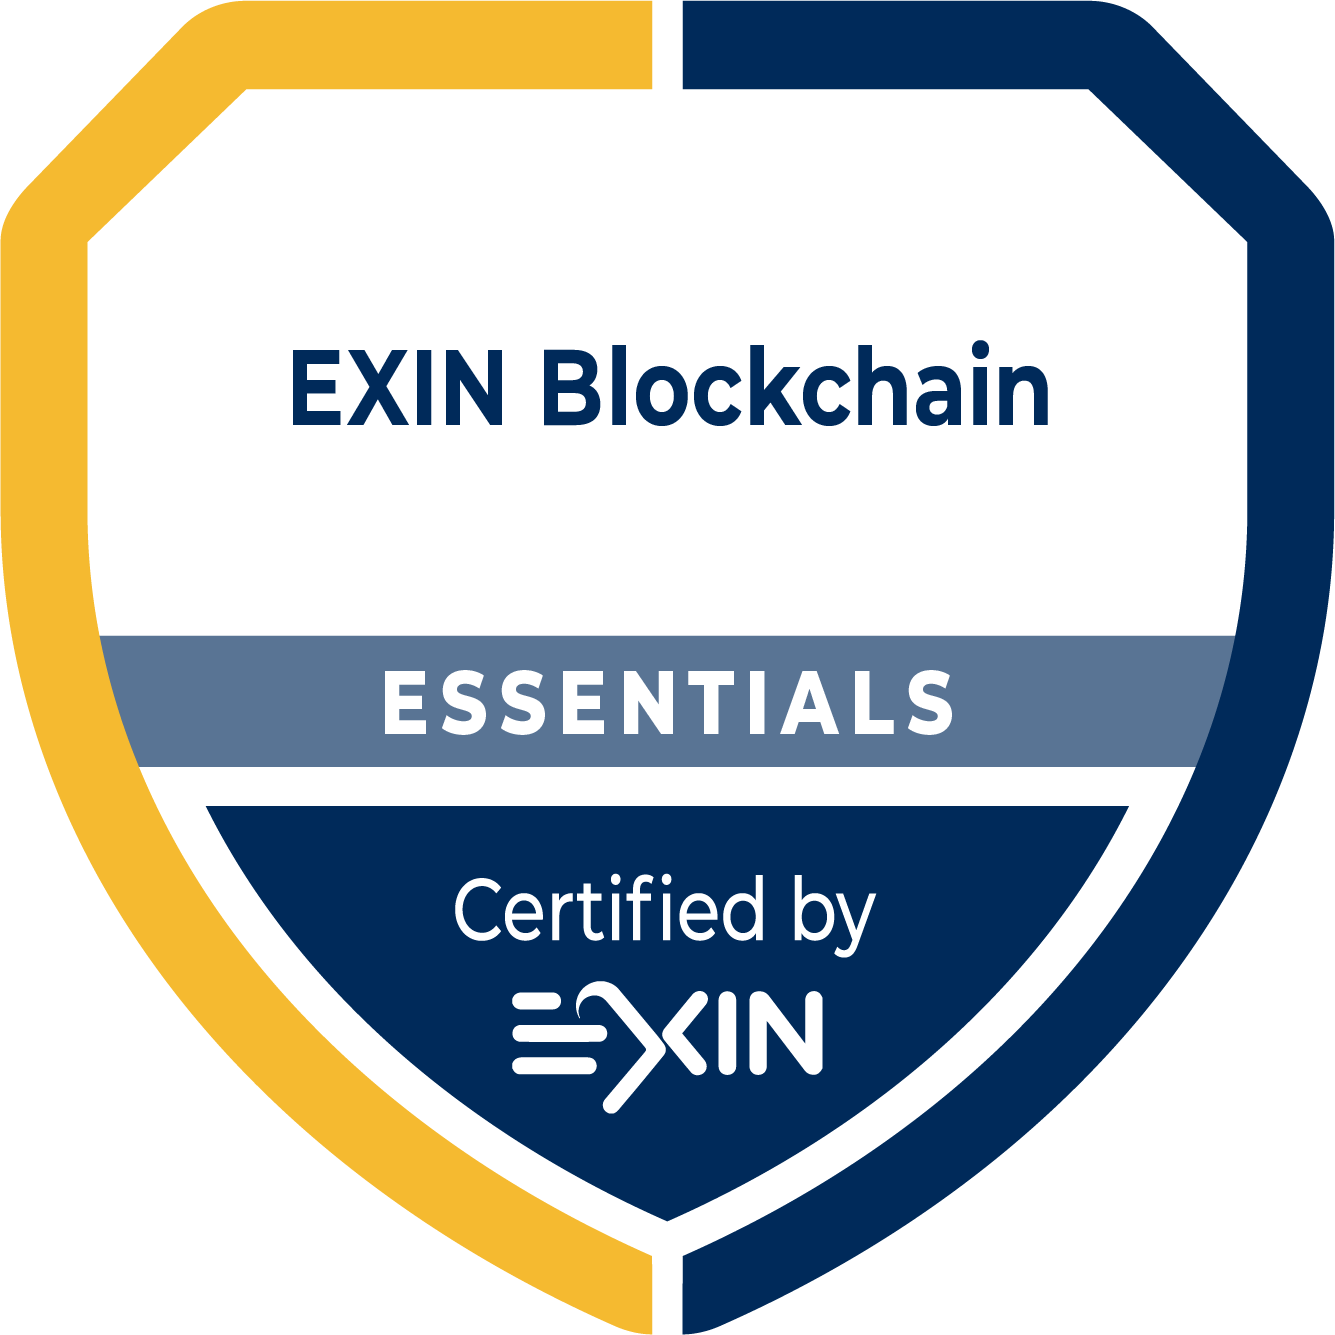 EXIN Blockchain Essentials